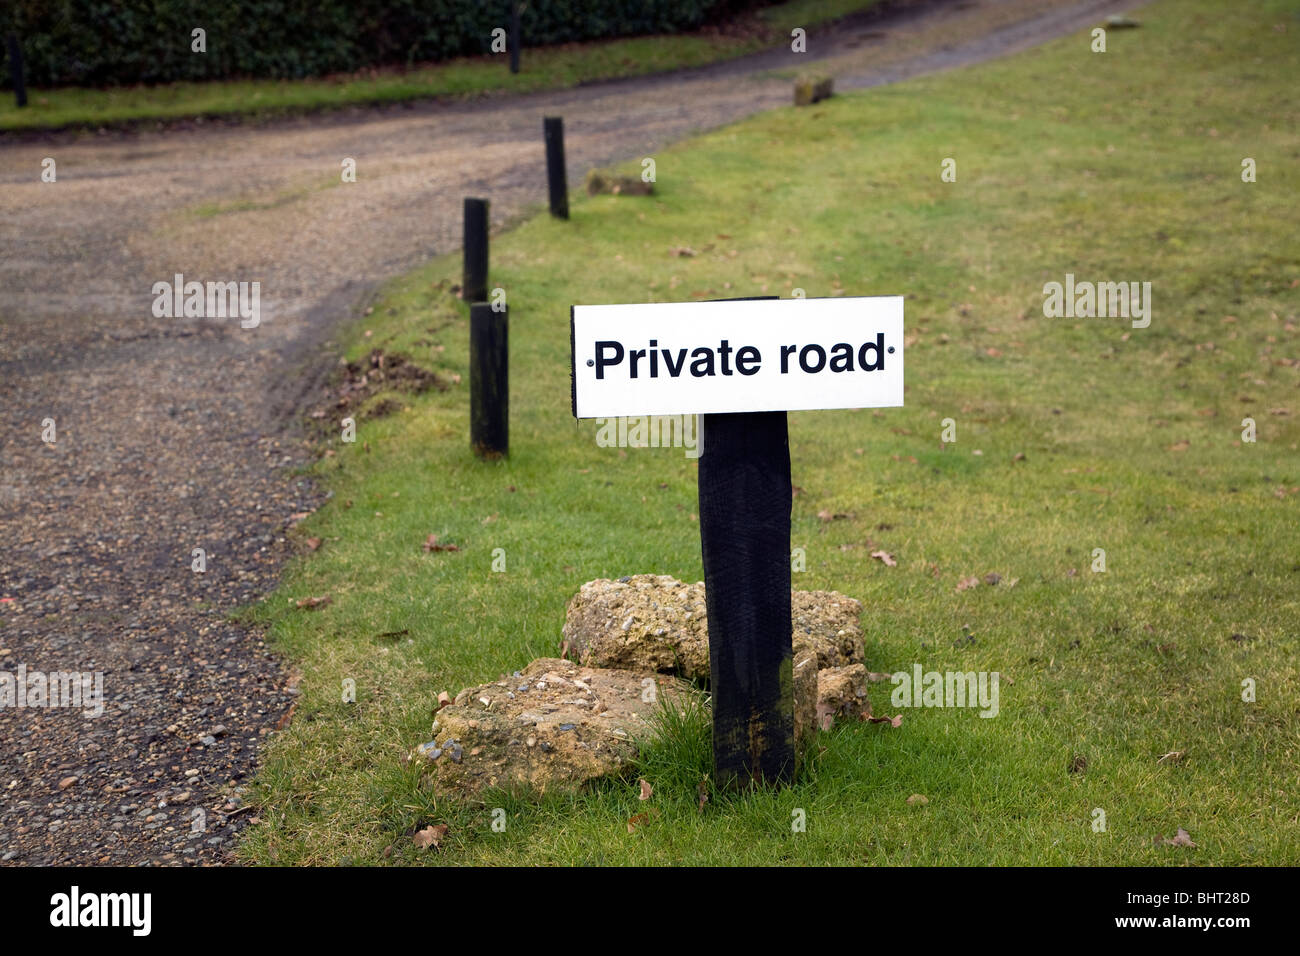 Private road sign grass verge - Stock Image